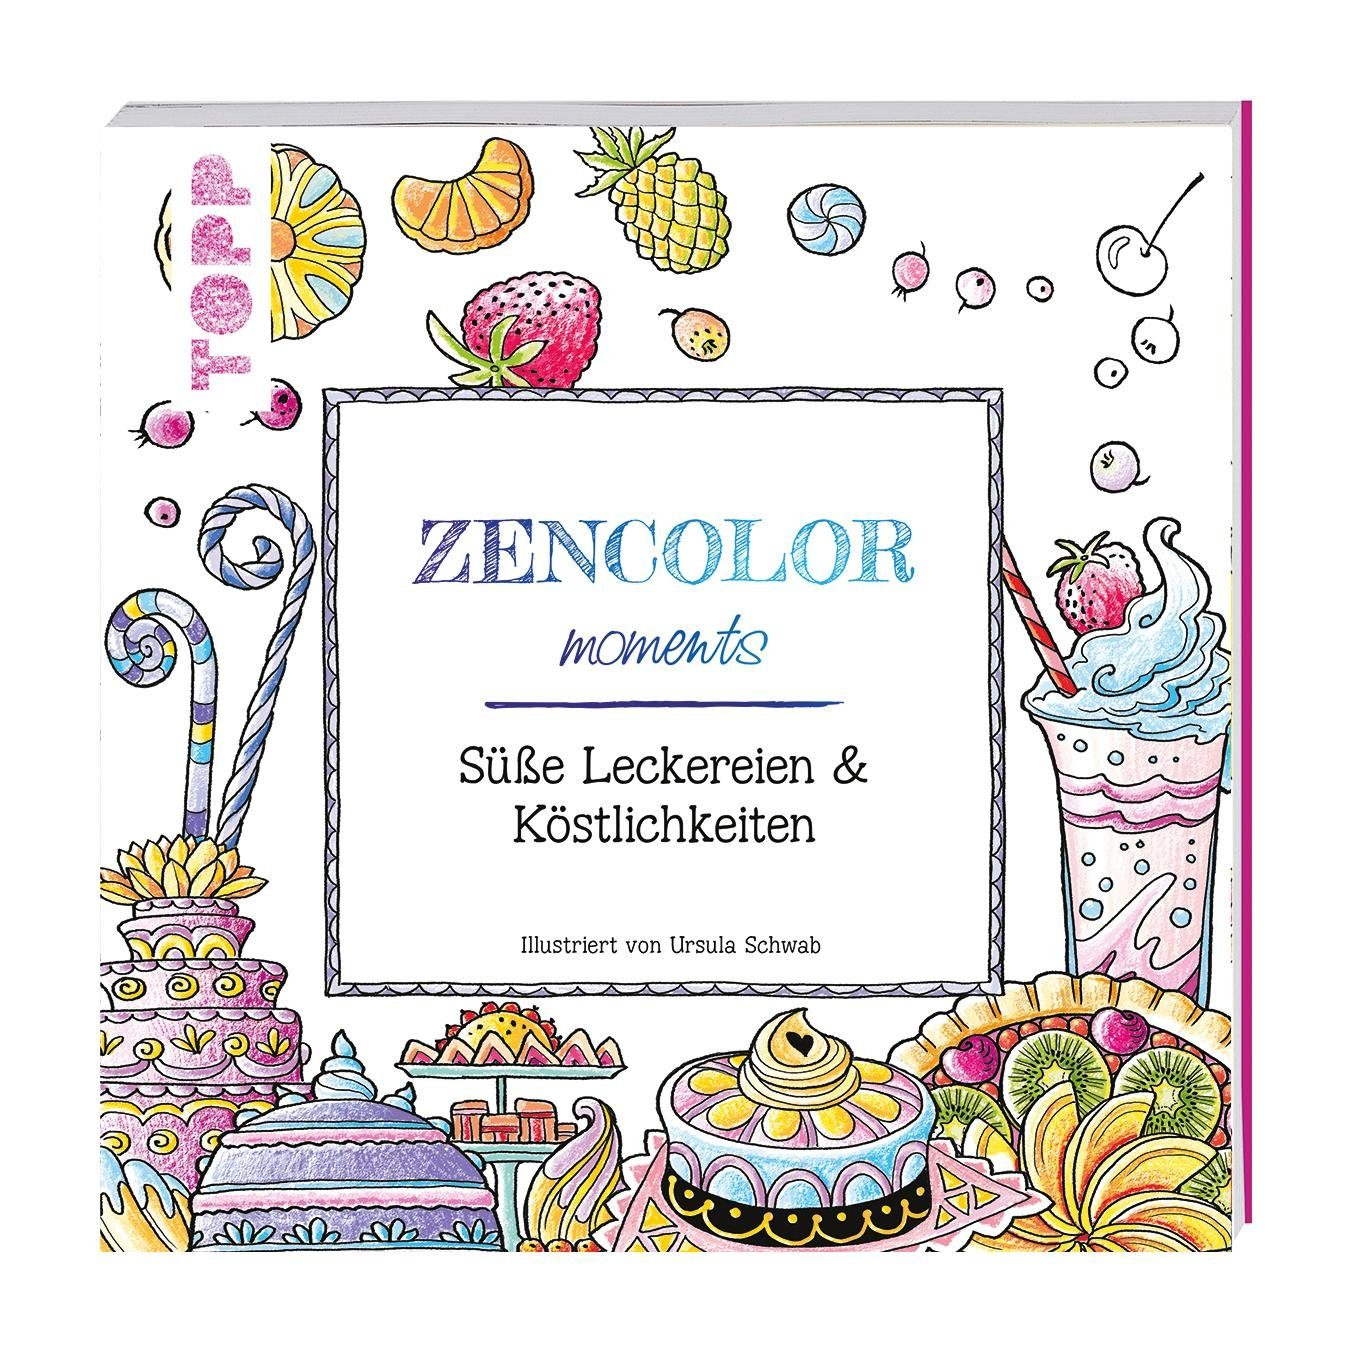 """Topp Buch """"Zencolor moments - Sweets & Candy"""""""